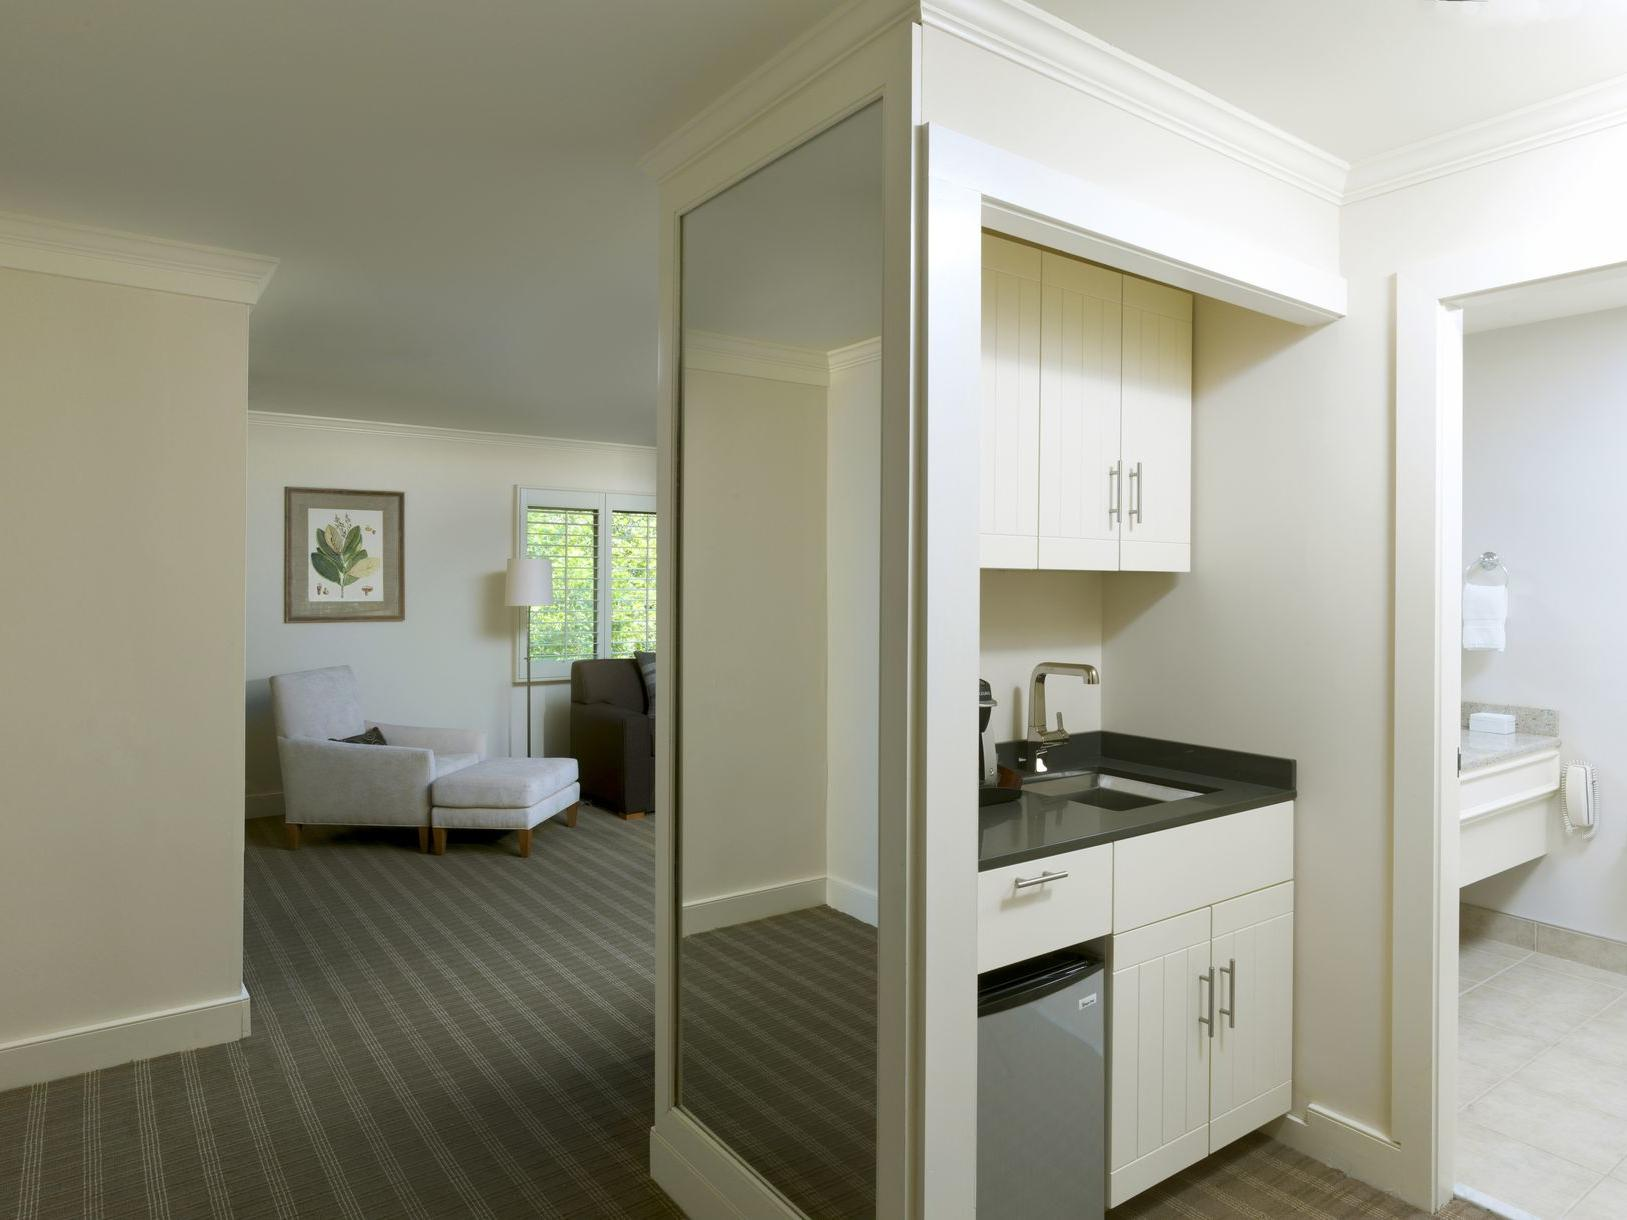 Living space and bathroom of hotel suite.